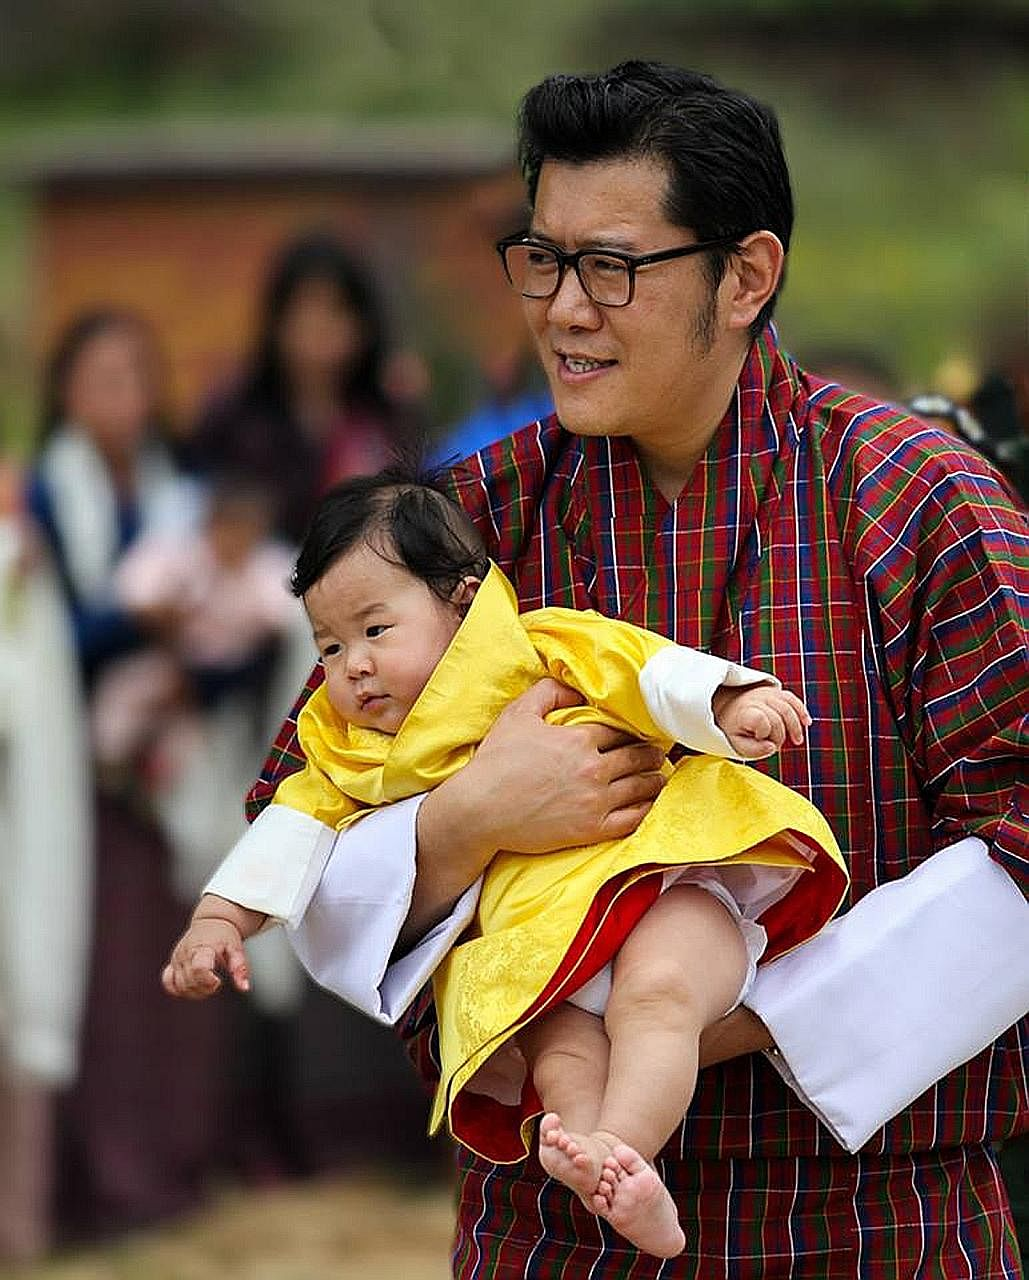 Bhutan's King Wangchuk with his son Jigme Namgyel Wangchuck during a royal visit to Bumthang district. The prince's photos were posted on the Facebook pages of the royal couple.